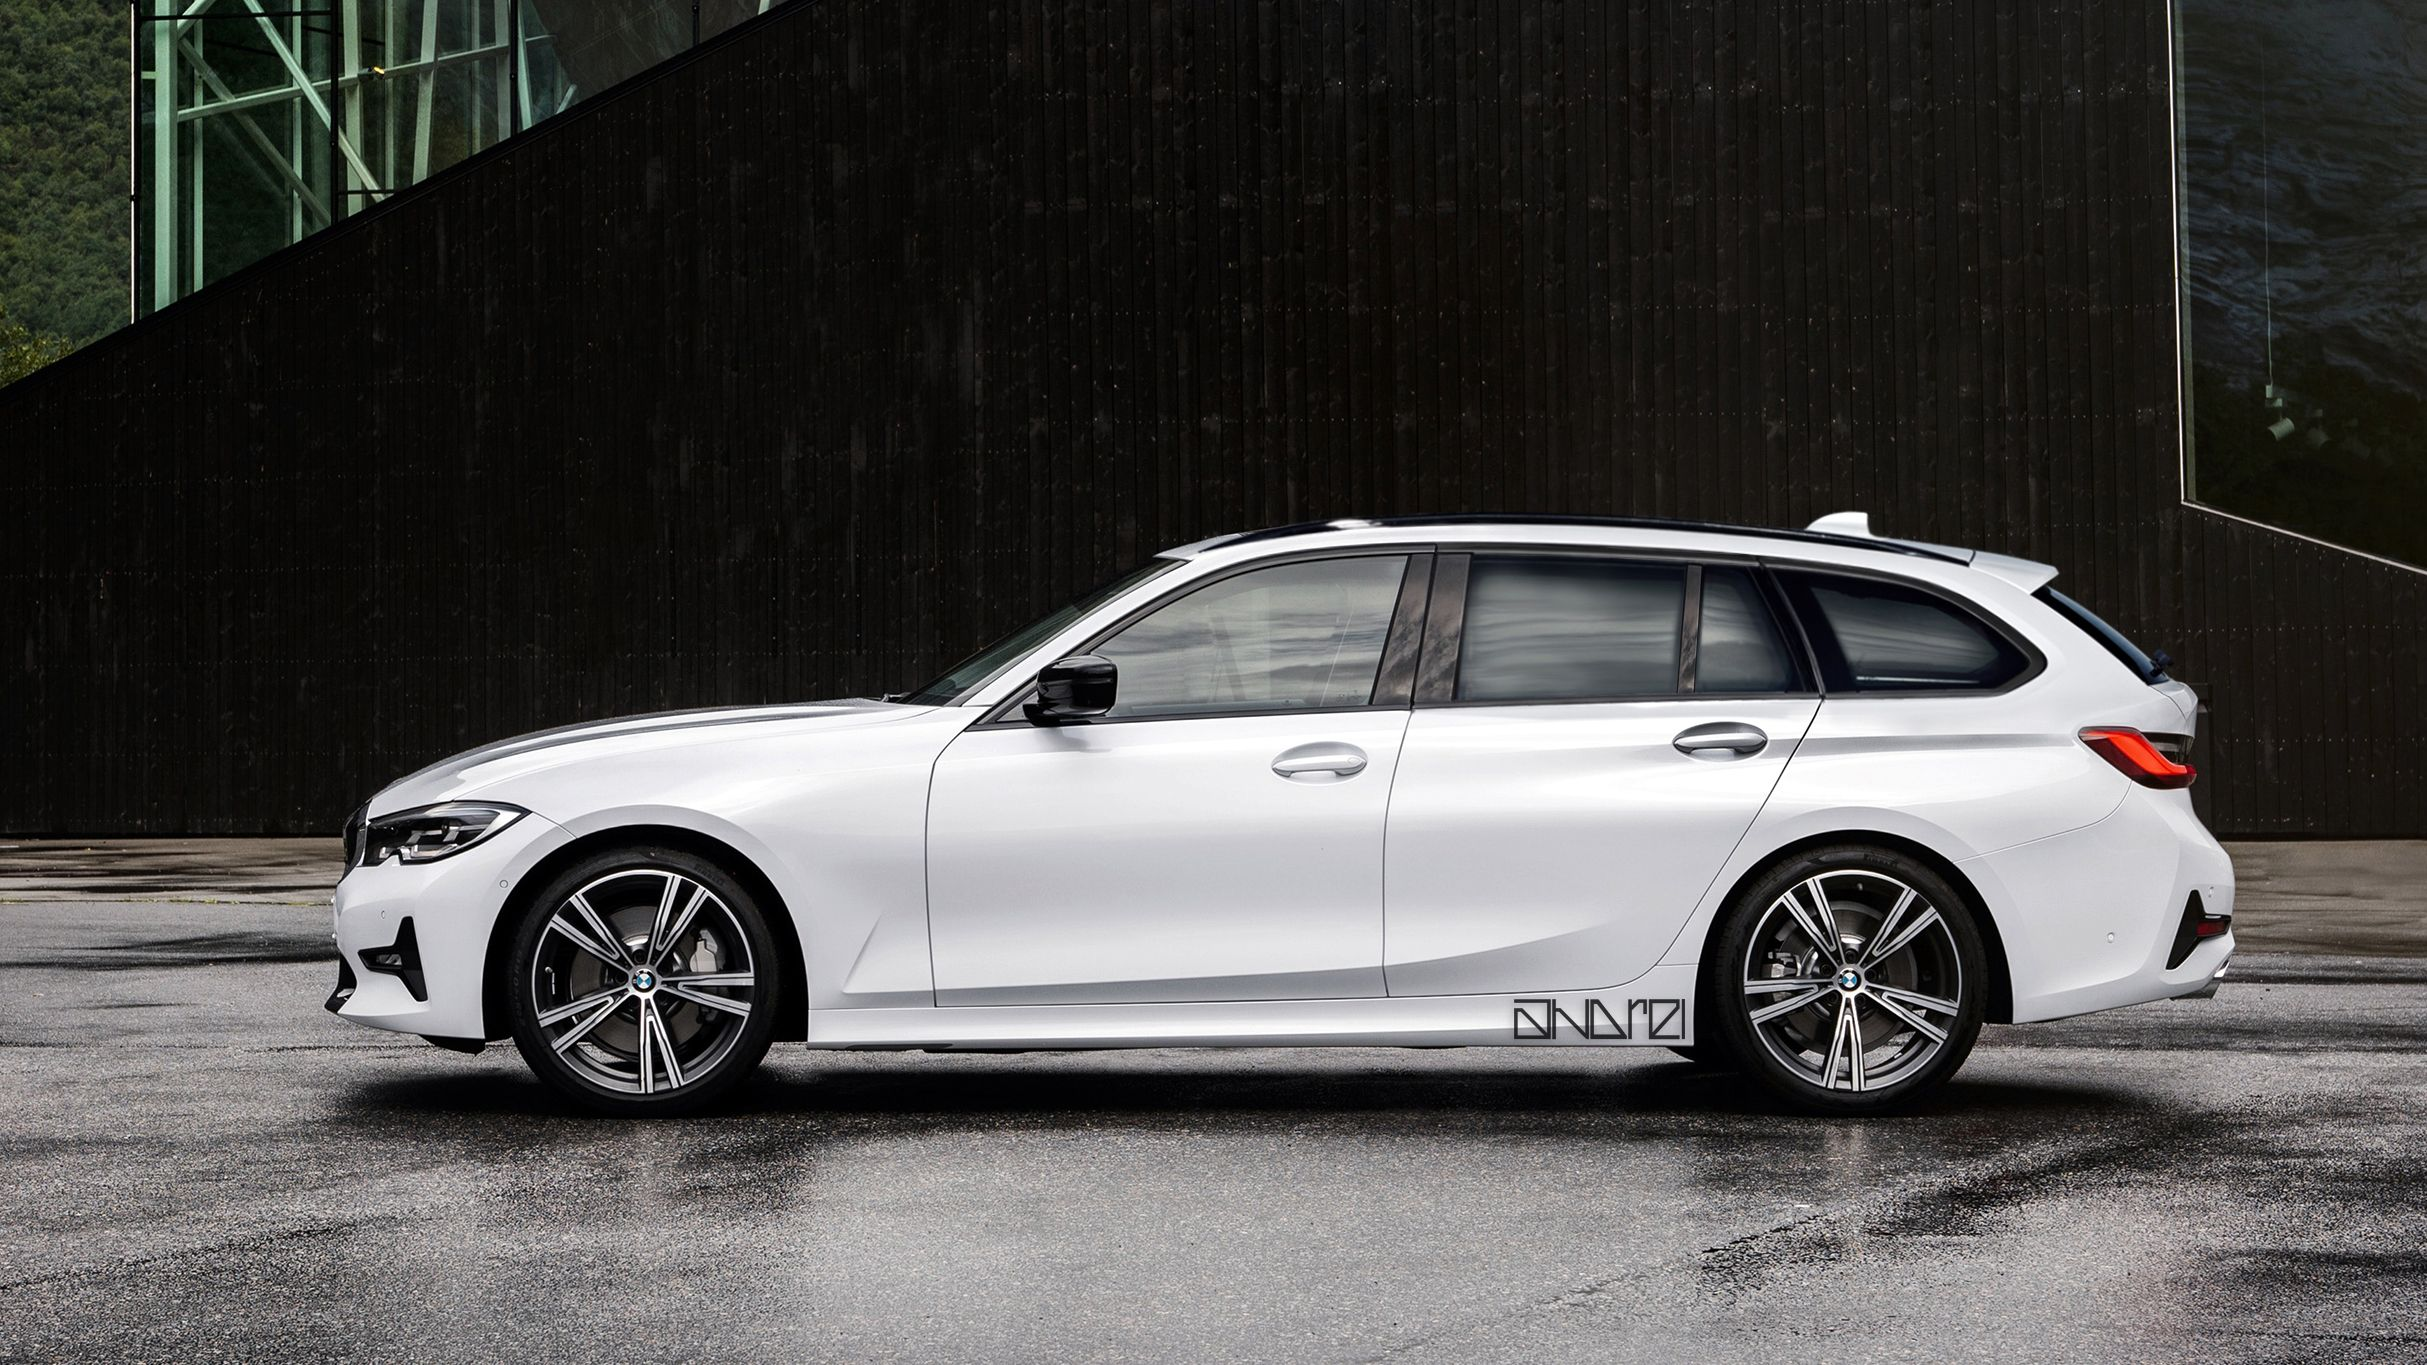 2020 Bmw 3 Series Touring Rendered Top Speed Bmw Wagon Bmw Touring Bmw